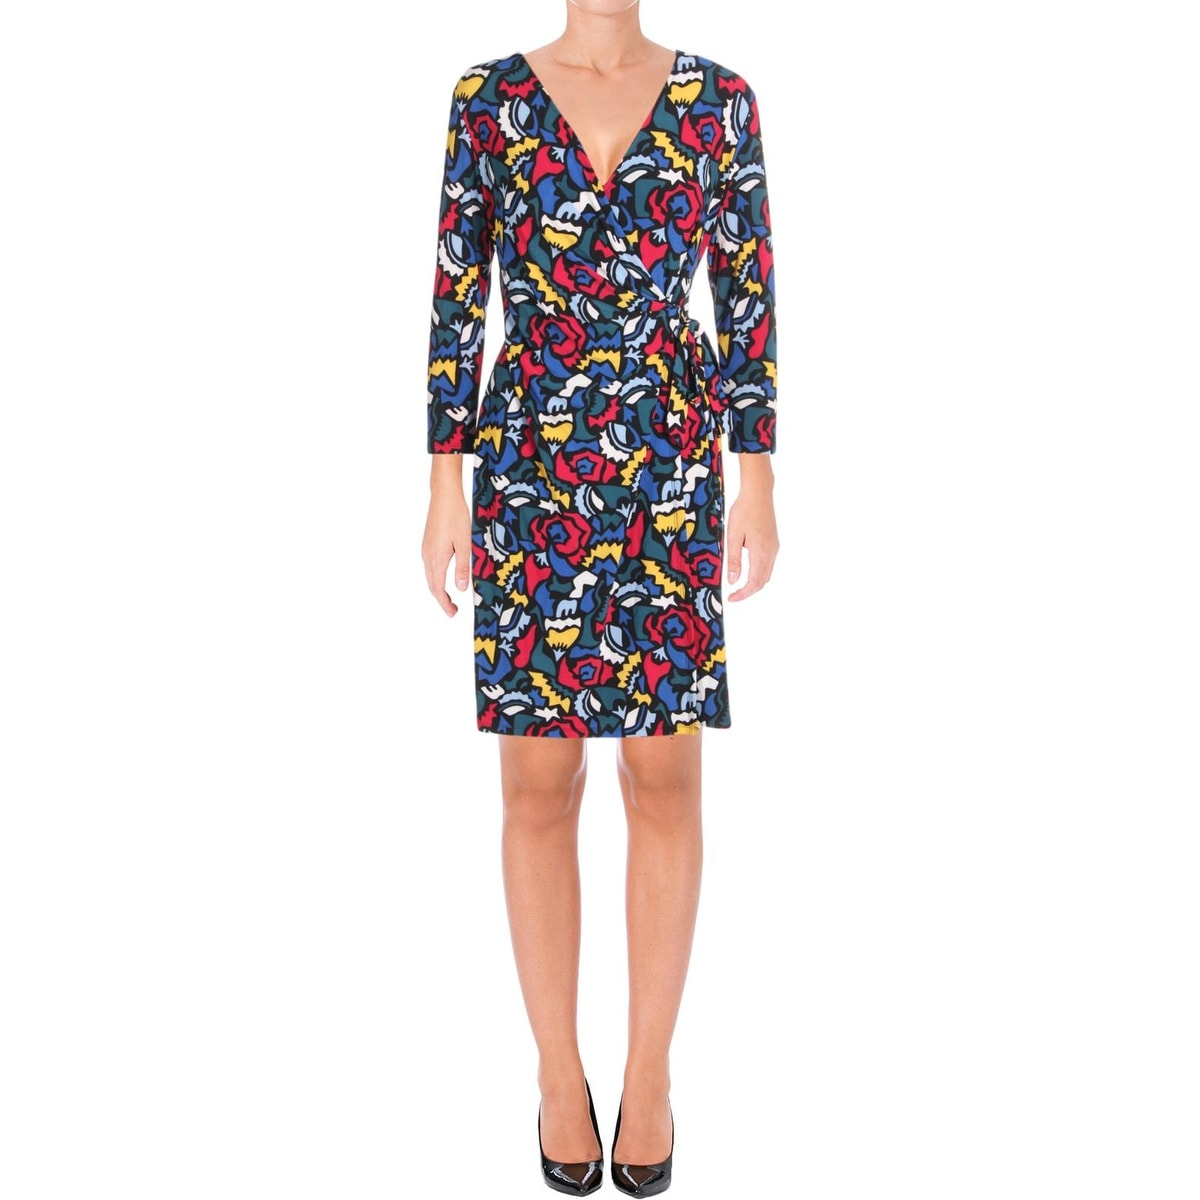 b24aab9a80f Shop Anne Klein Womens Wear to Work Dress Printed Faux Wrap - Free Shipping  On Orders Over $45 - Overstock - 23142256